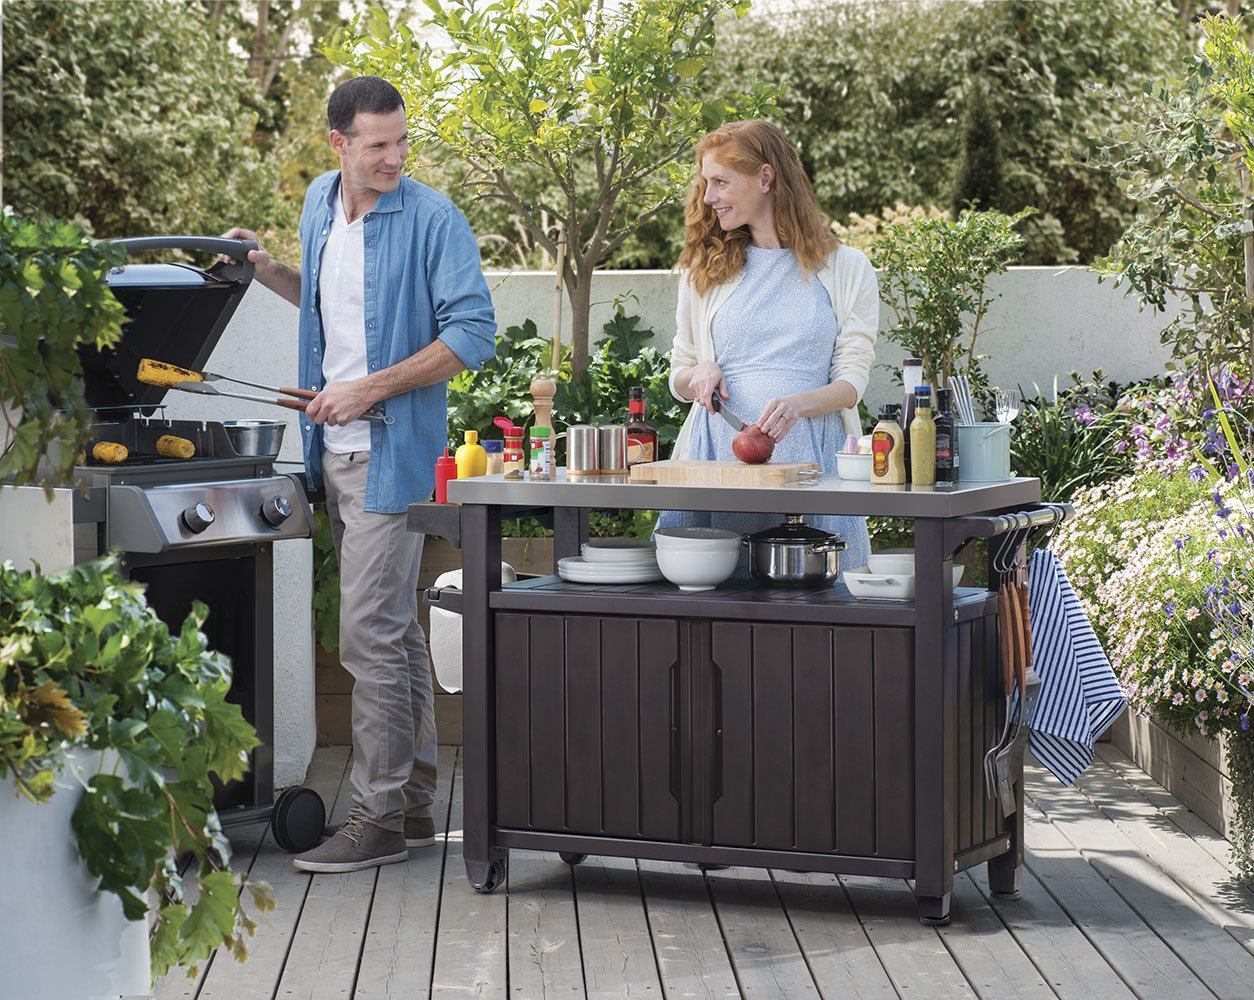 Keter Unity XL Indoor Outdoor Entertainment BBQ Storage Table / Prep Station / Serving Cart with Metal Top by Keter (Image #2)